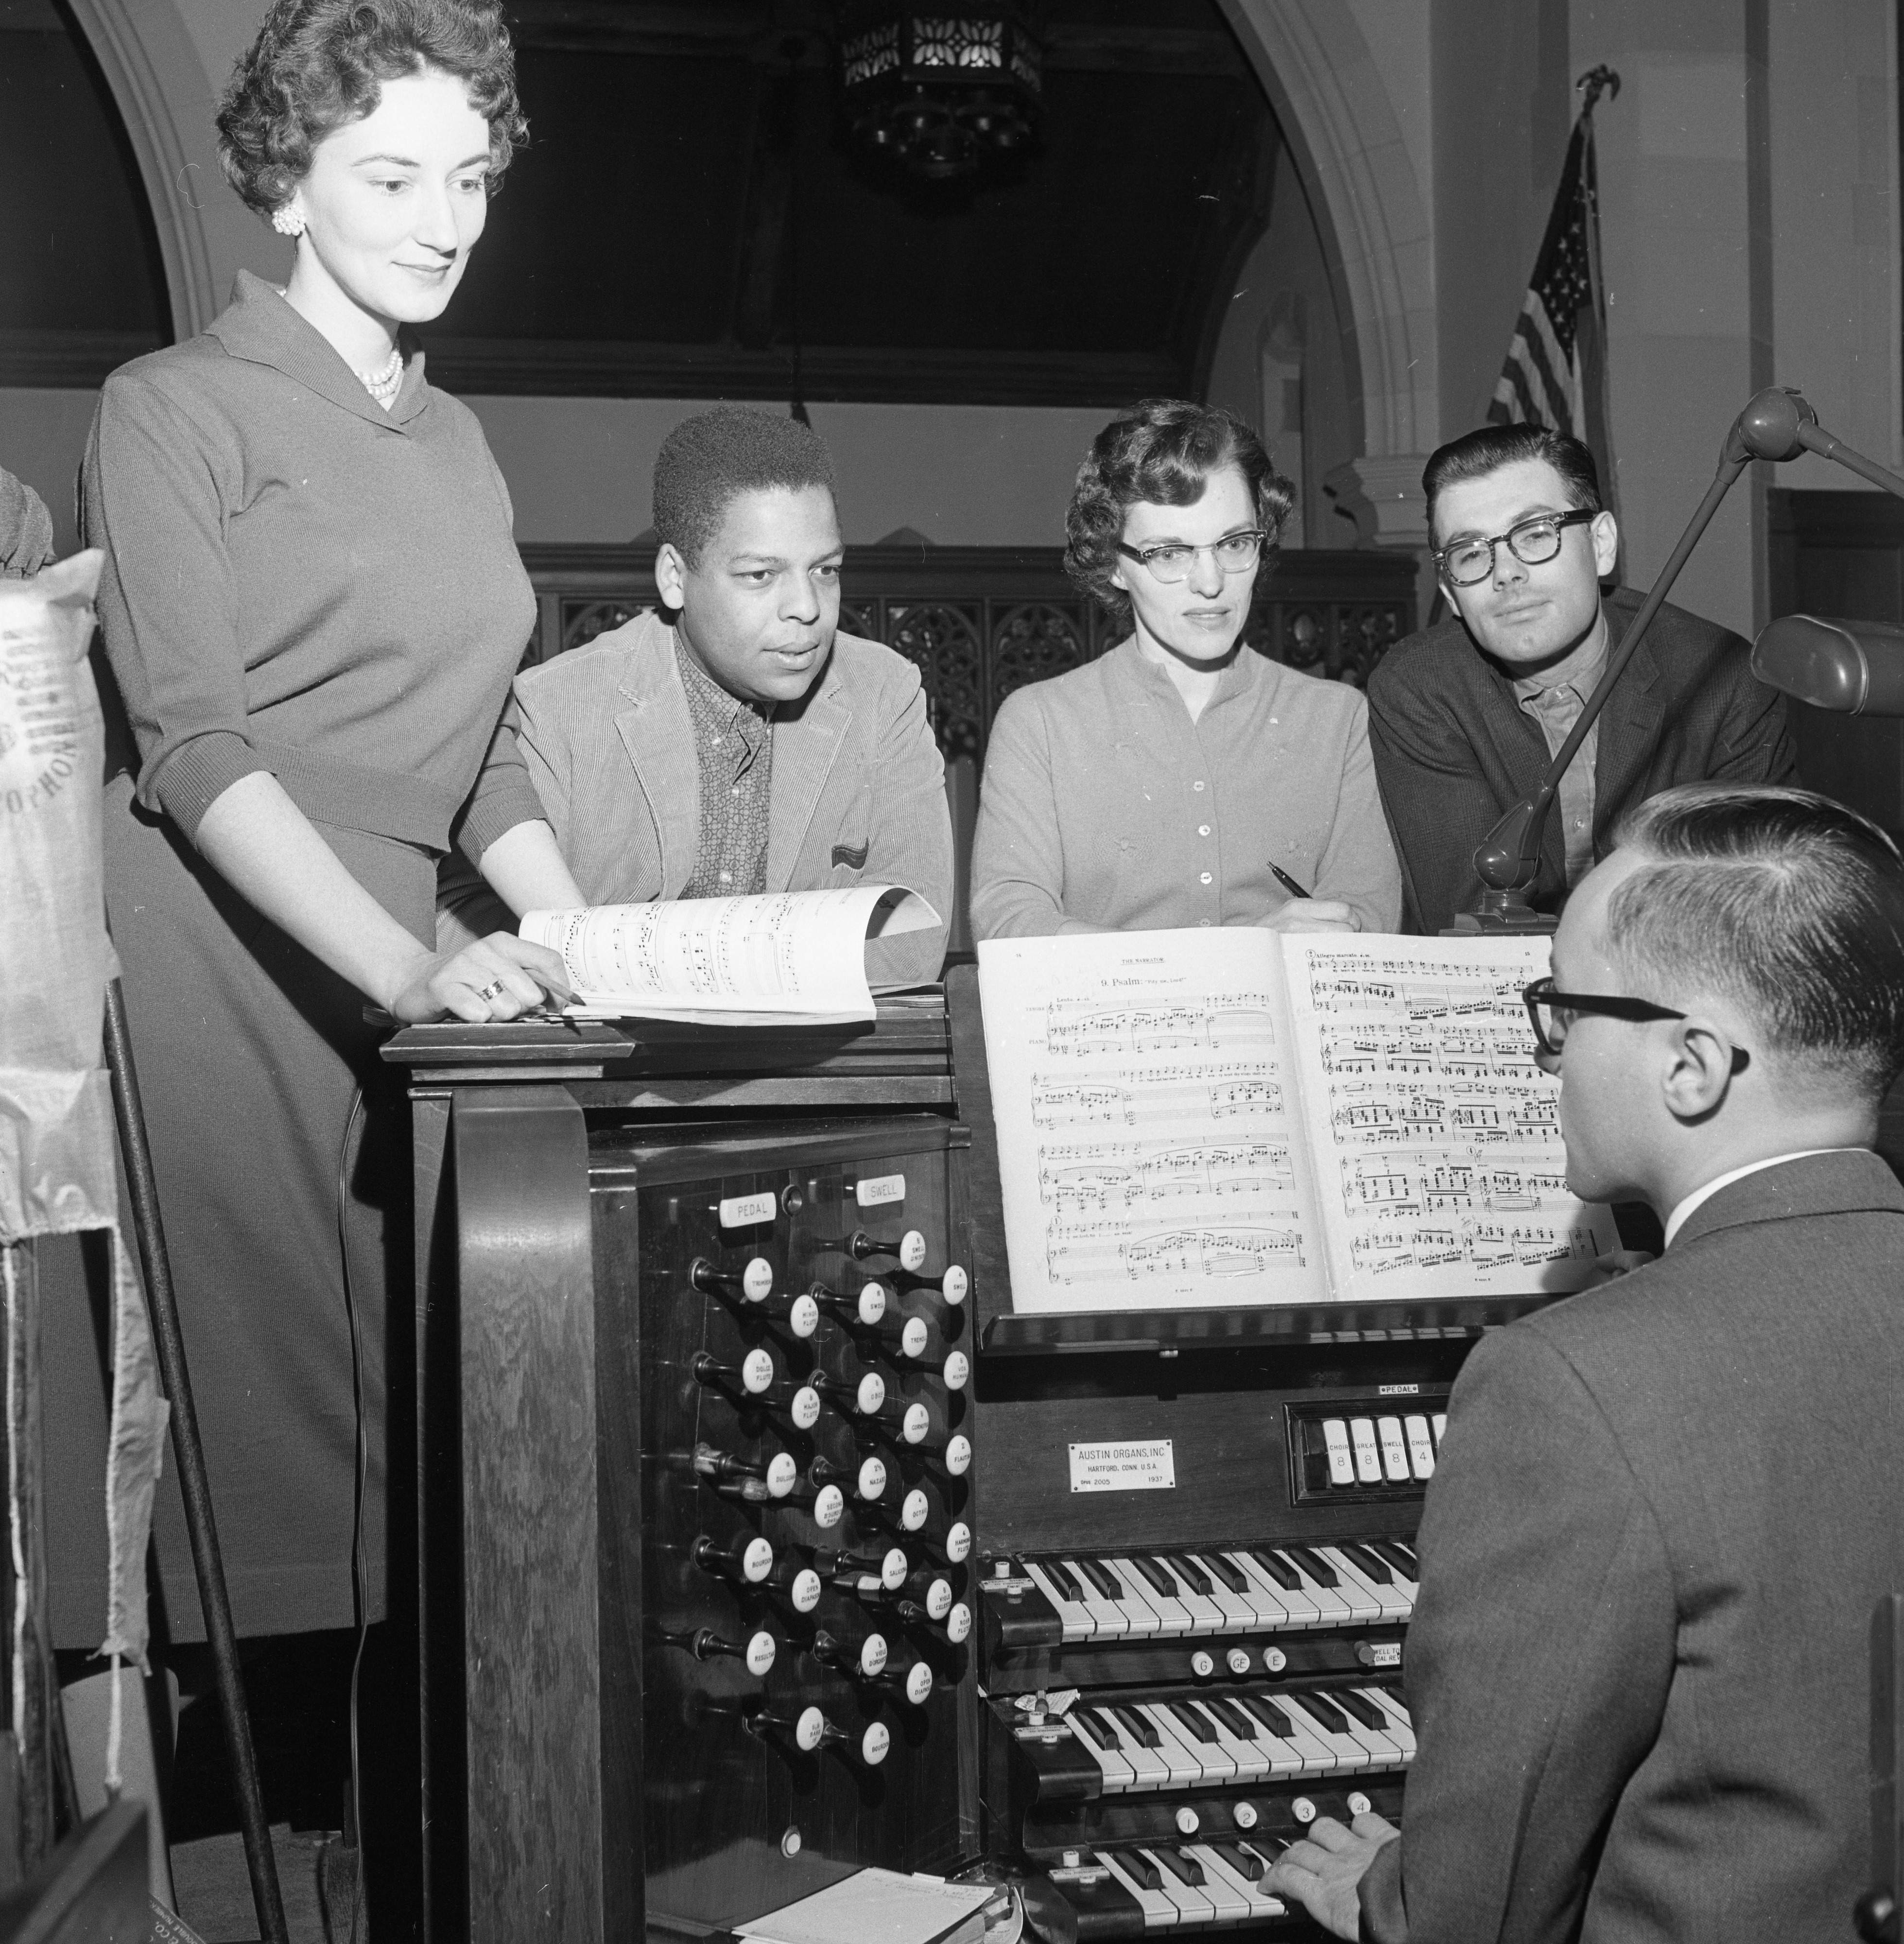 Soloists for Dramatic Oratorio at St. Andrew's Episcopal Church, February 1962 image